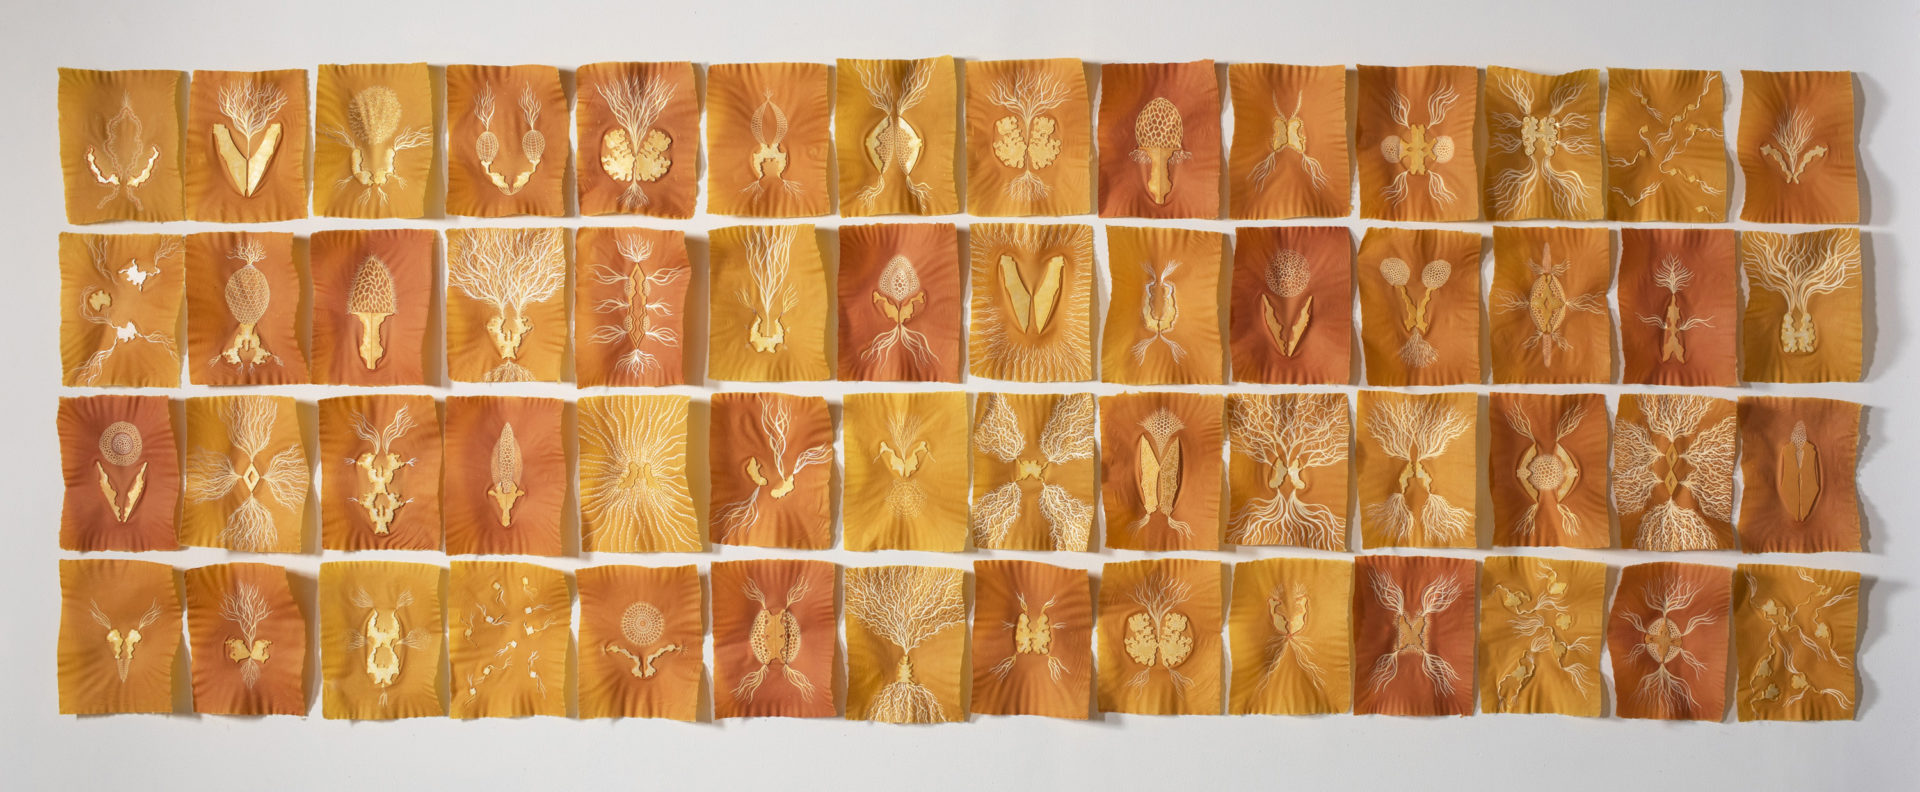 """Michelle Samour, """"Land of Milk and Honey: Stuck,"""" 2020. (Courtesy Fuller Craft Museum)"""